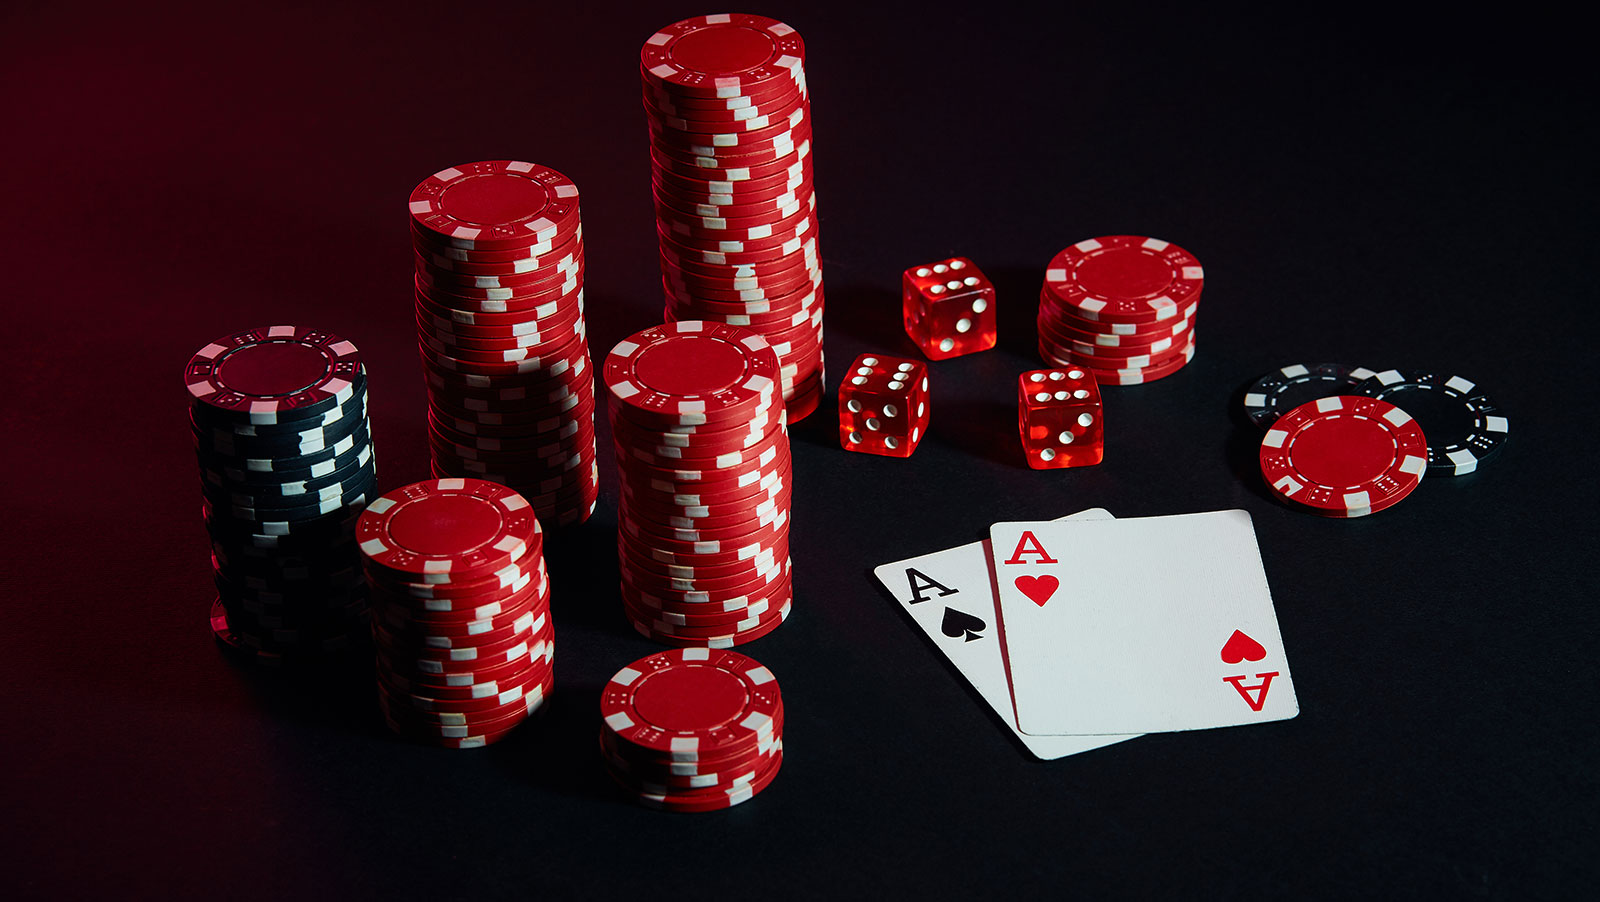 Gambling Marketing Musings: 888, WPT, Aspers & the white triangular bin